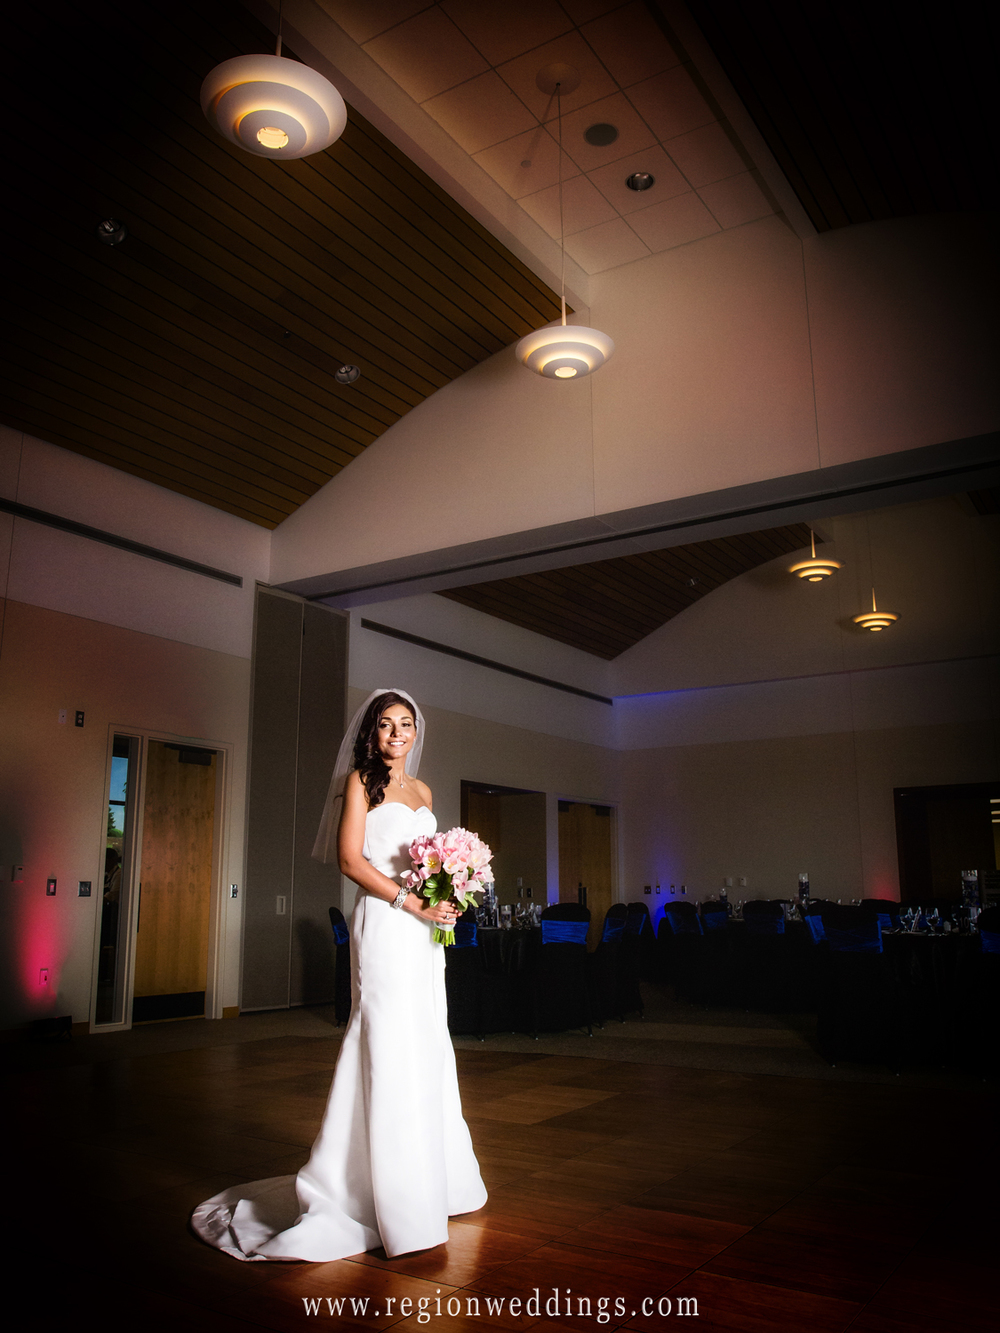 A spotlight shines upon the bride for her wedding portrait at Centennial Park in Munster, Indiana.